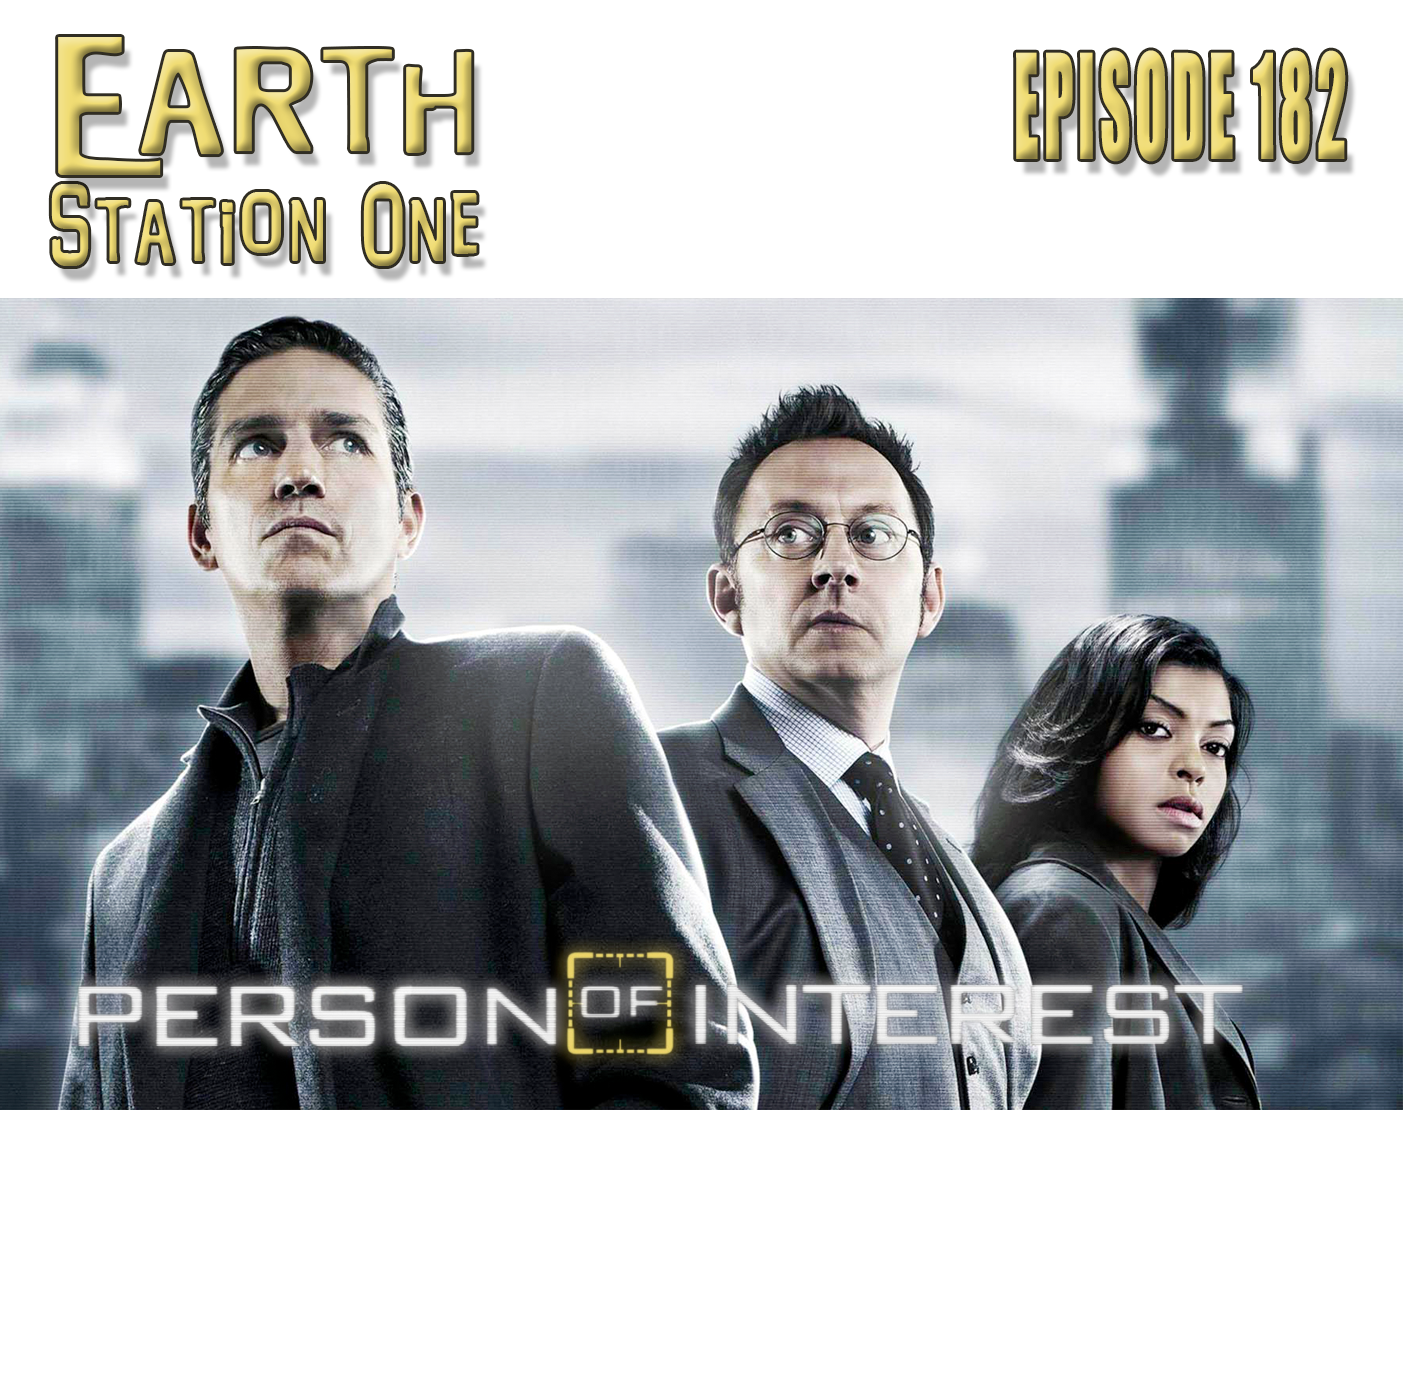 Earth Station One Episode 182 - Person of Interest